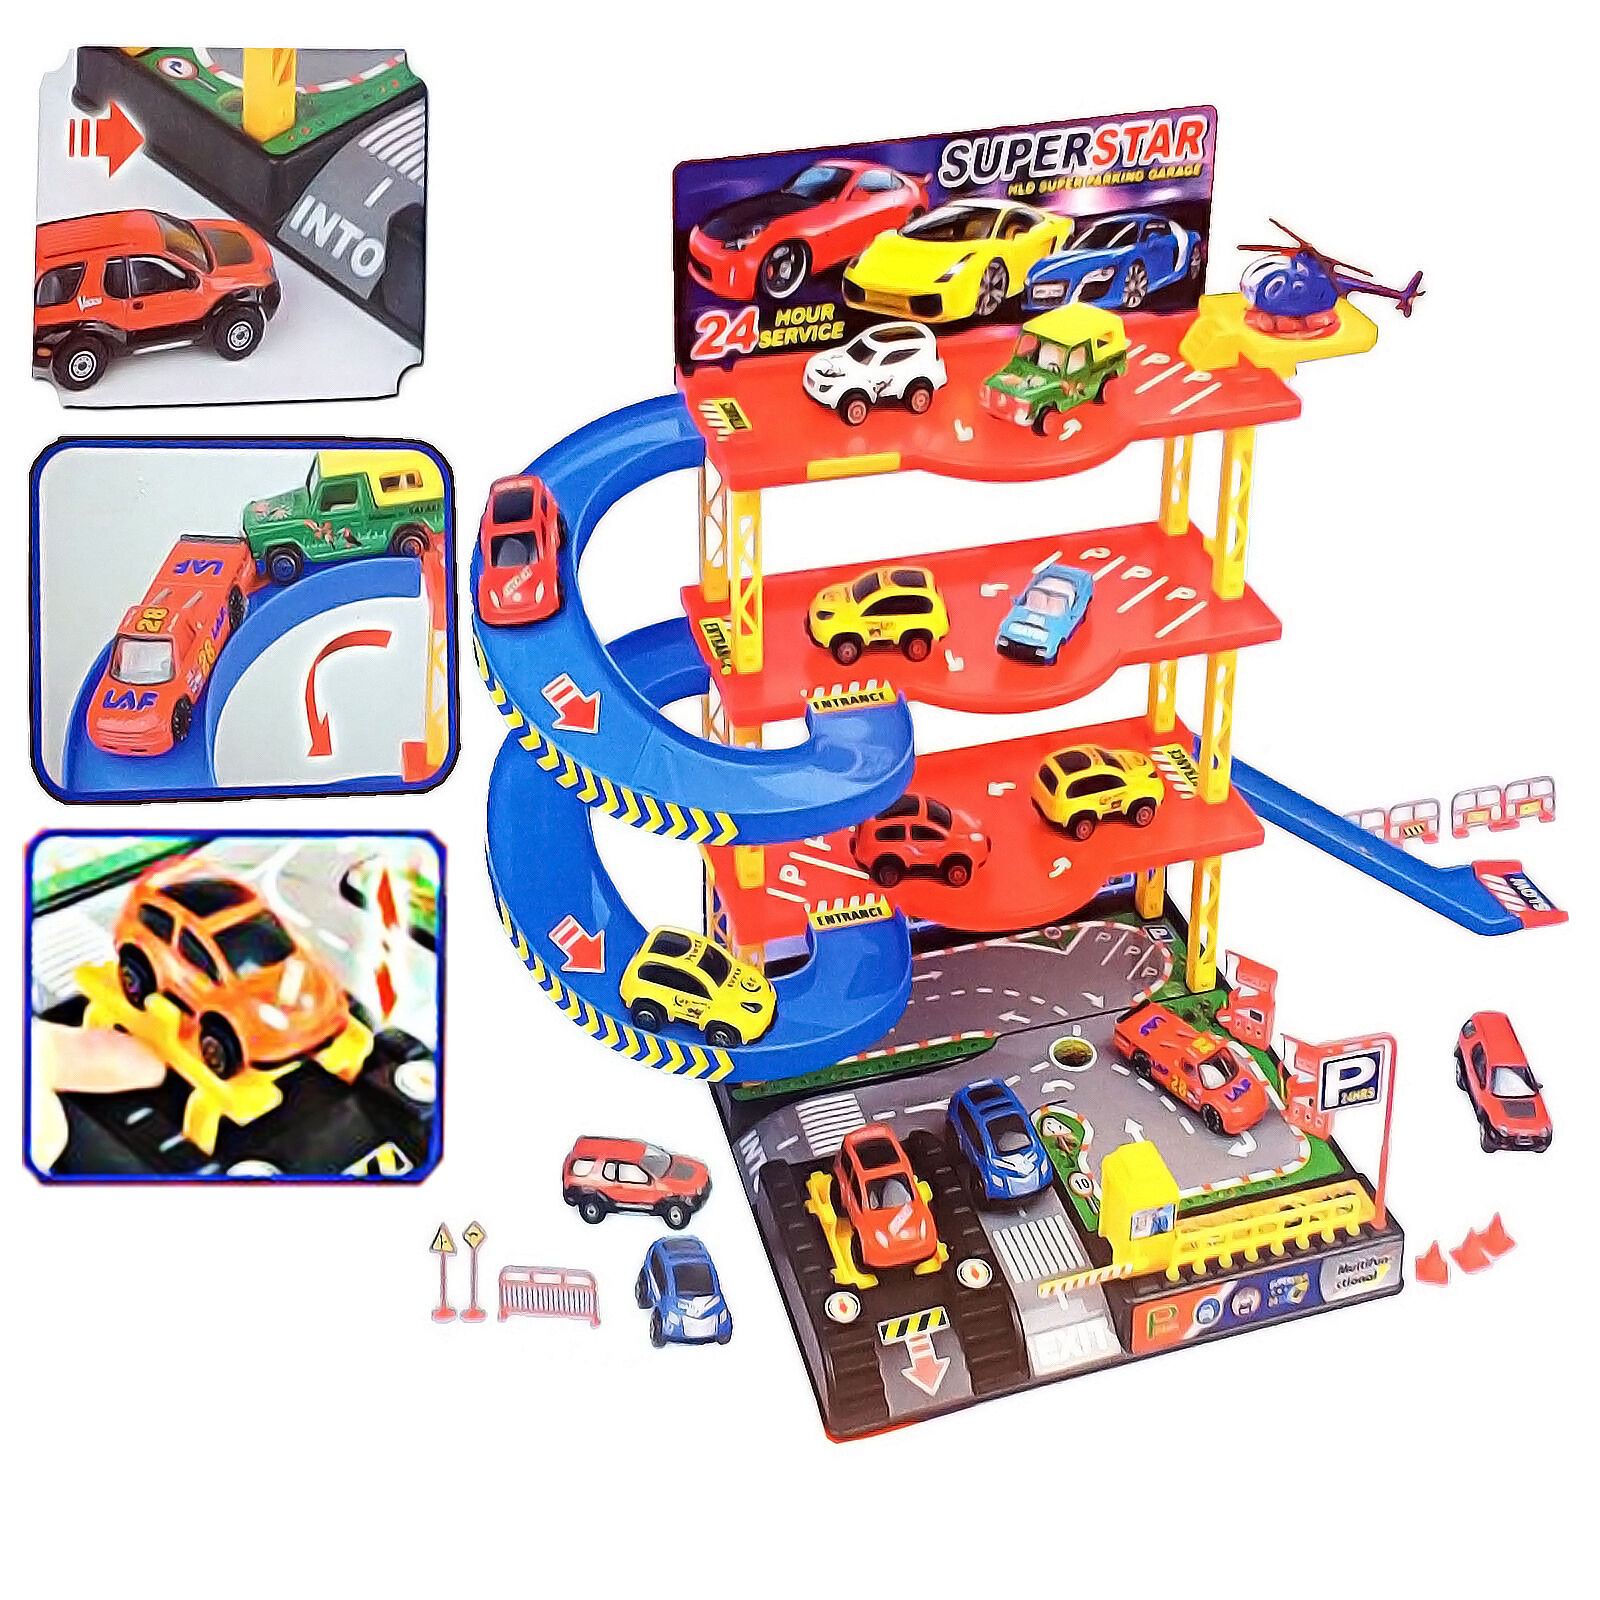 4 LEVEL KIDS PARKING GARAGE W  DIECAST CARS HELICOPTER SET IN OUT DOOR XMAS GIFT